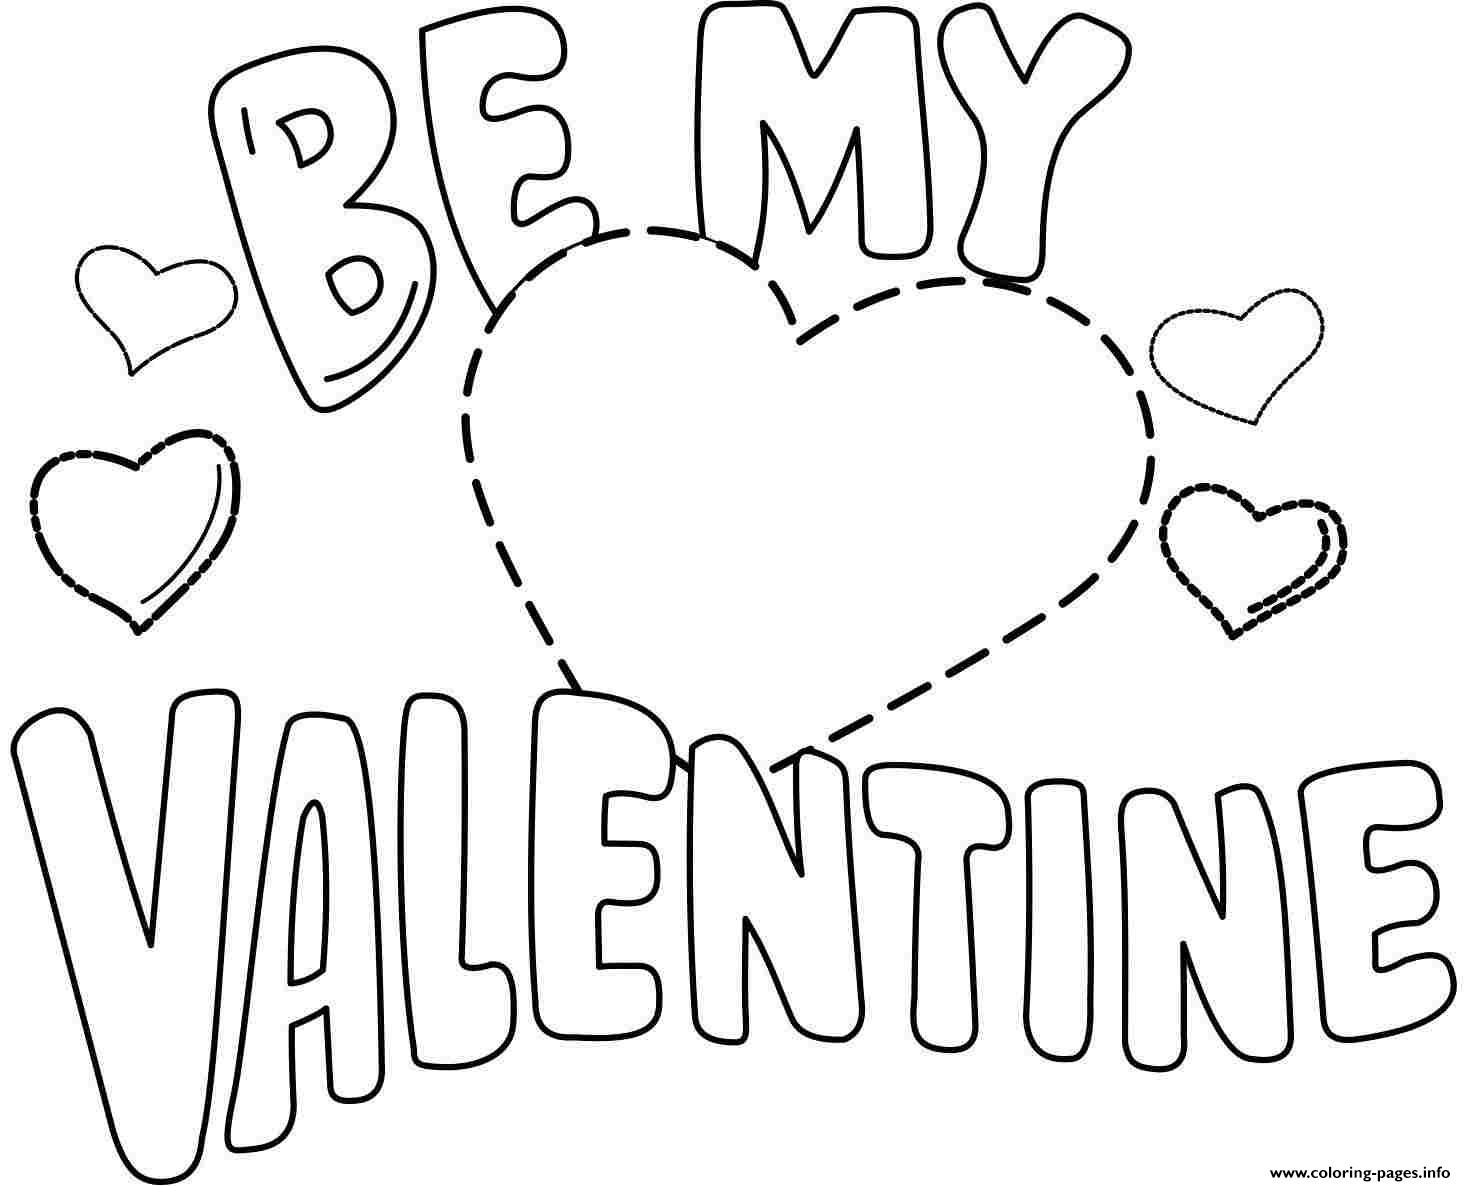 Coloring Book World: Printable Valentine Coloring Pages. Free - Free Printable Valentines Day Coloring Pages